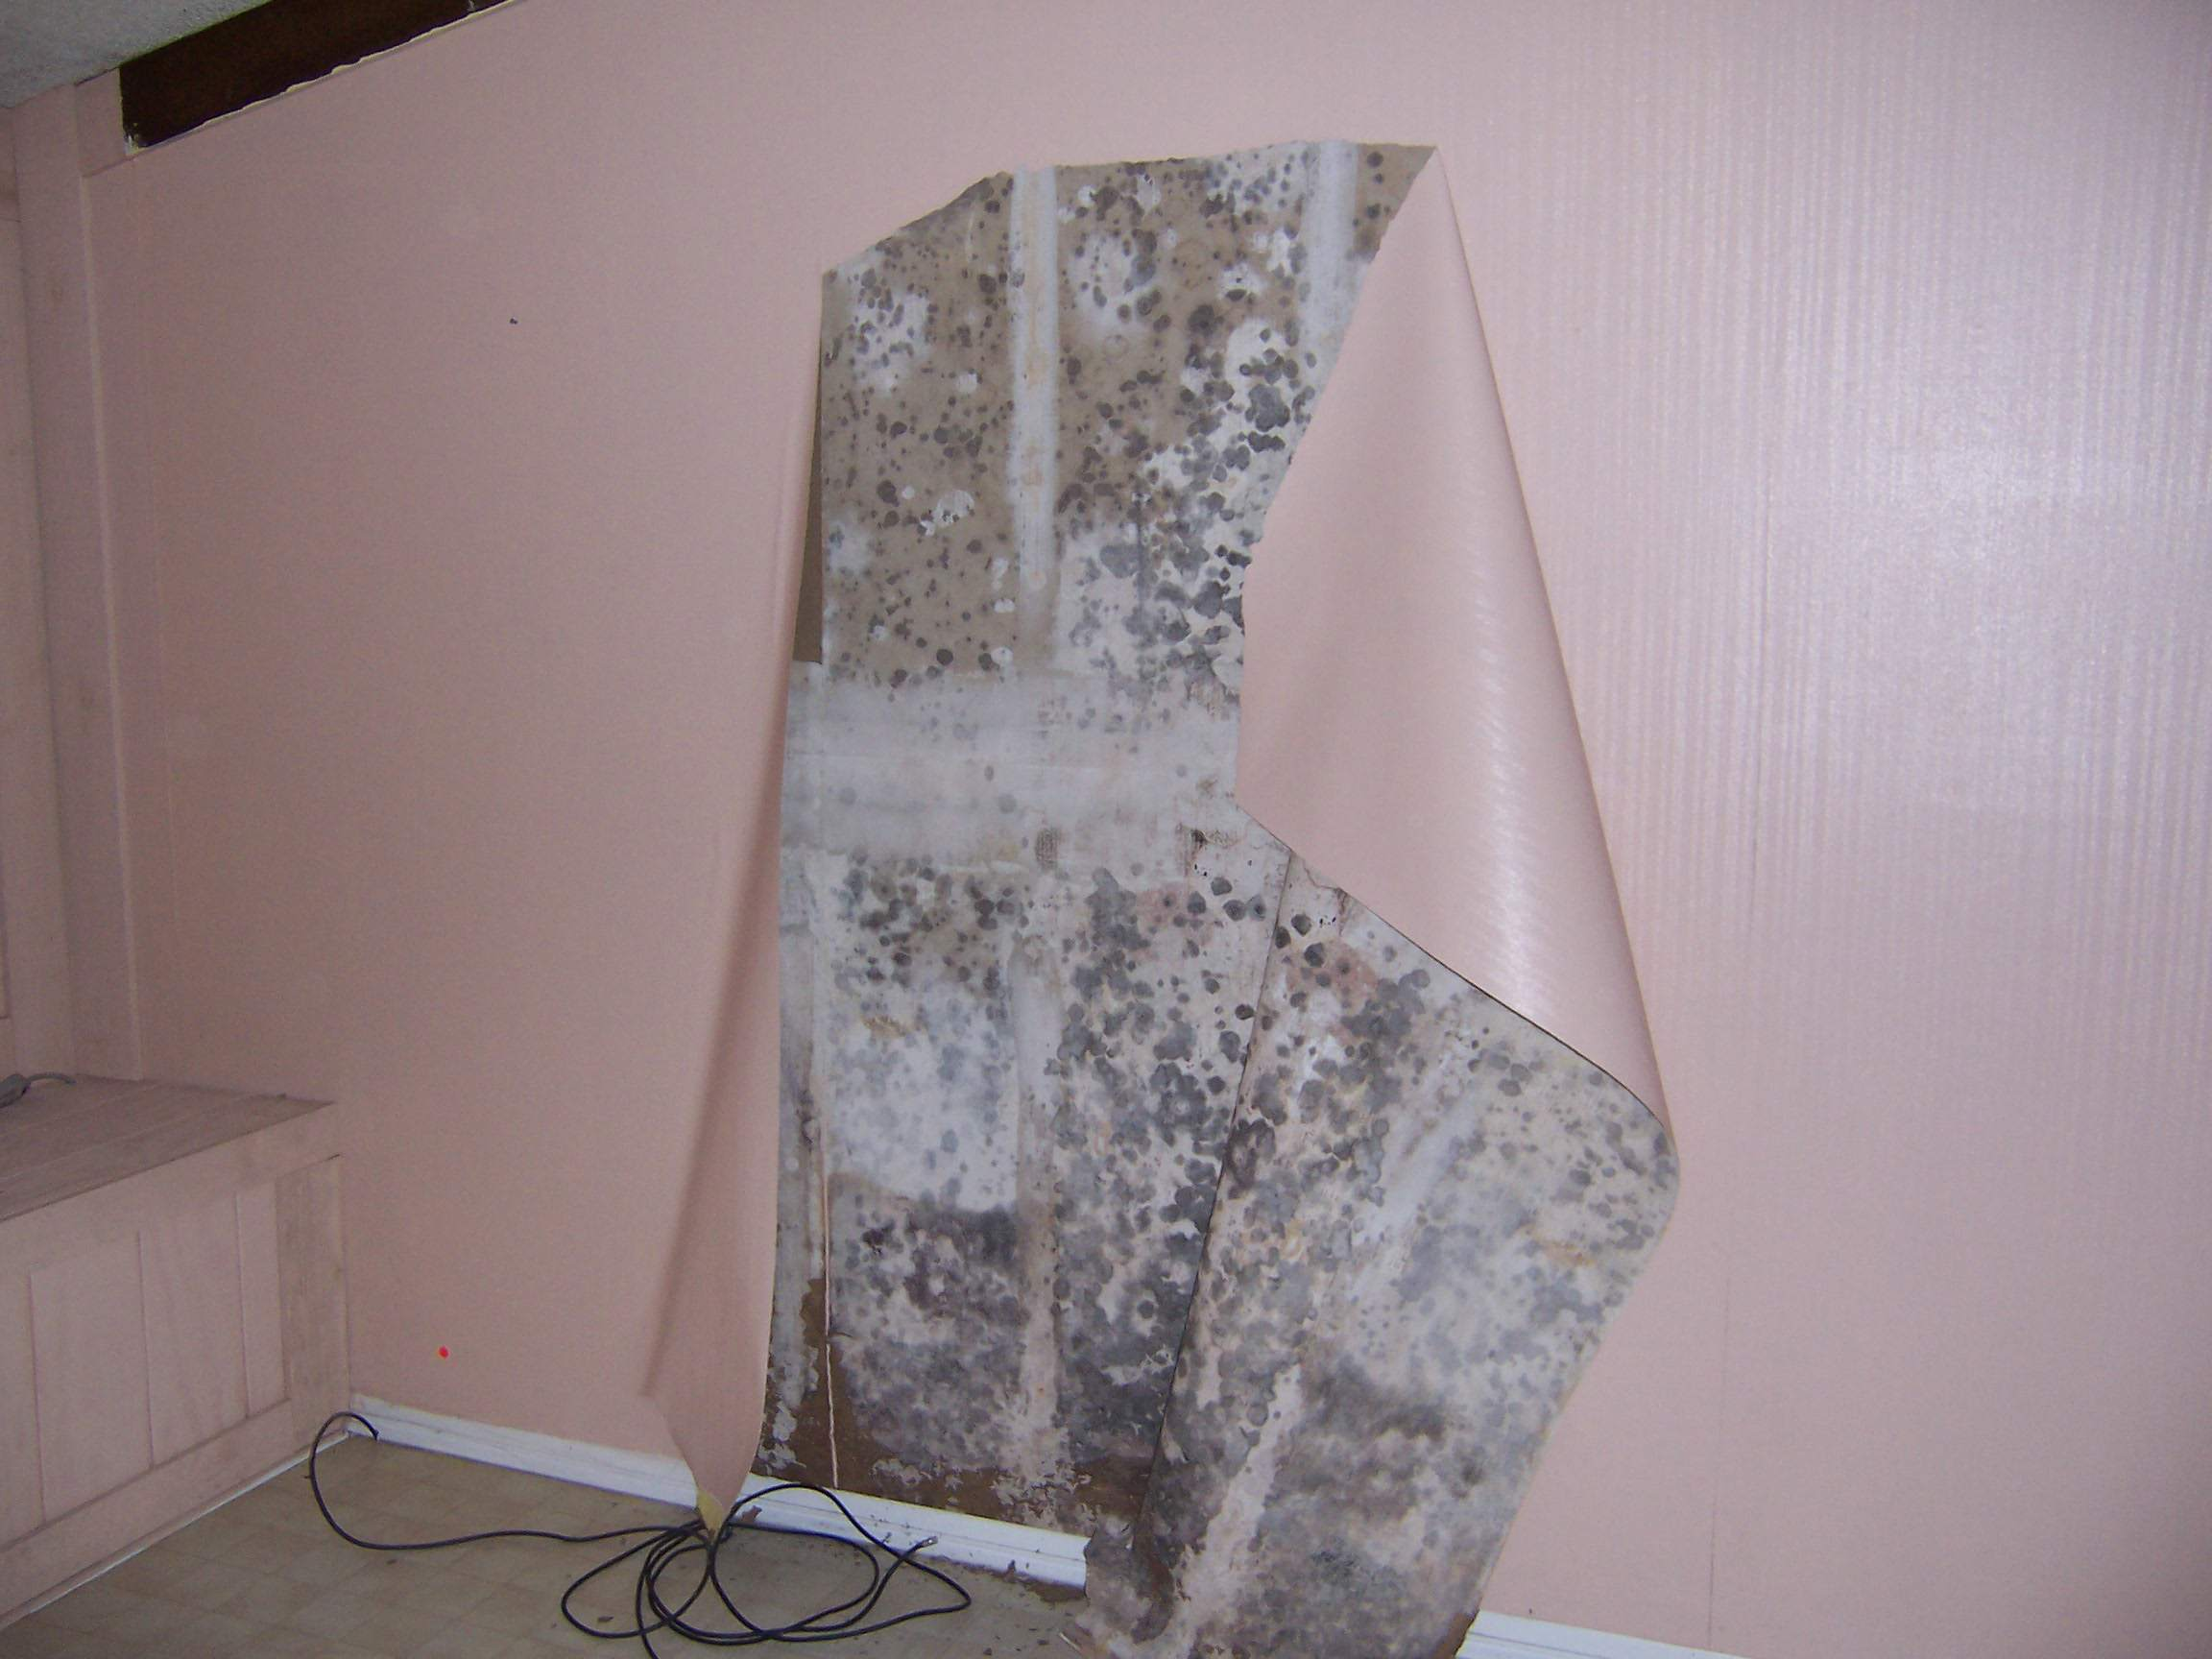 How do you remove mold from bathroom walls - Best Way To Remove Black Mold From Walls Phoenix